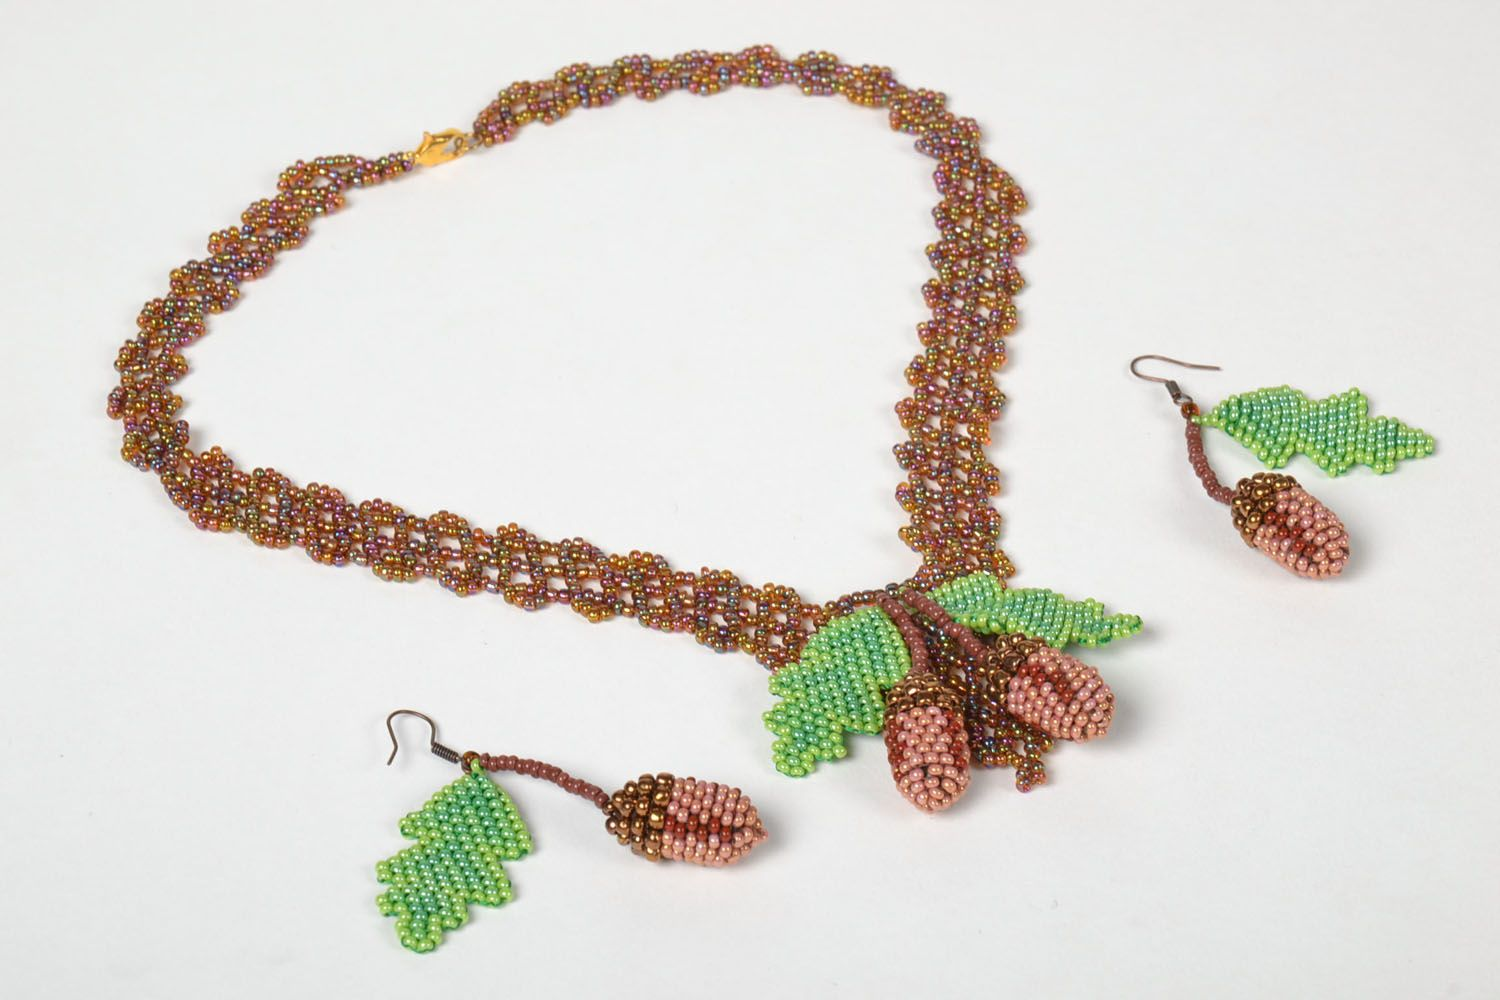 Beaded necklace and earrings photo 3